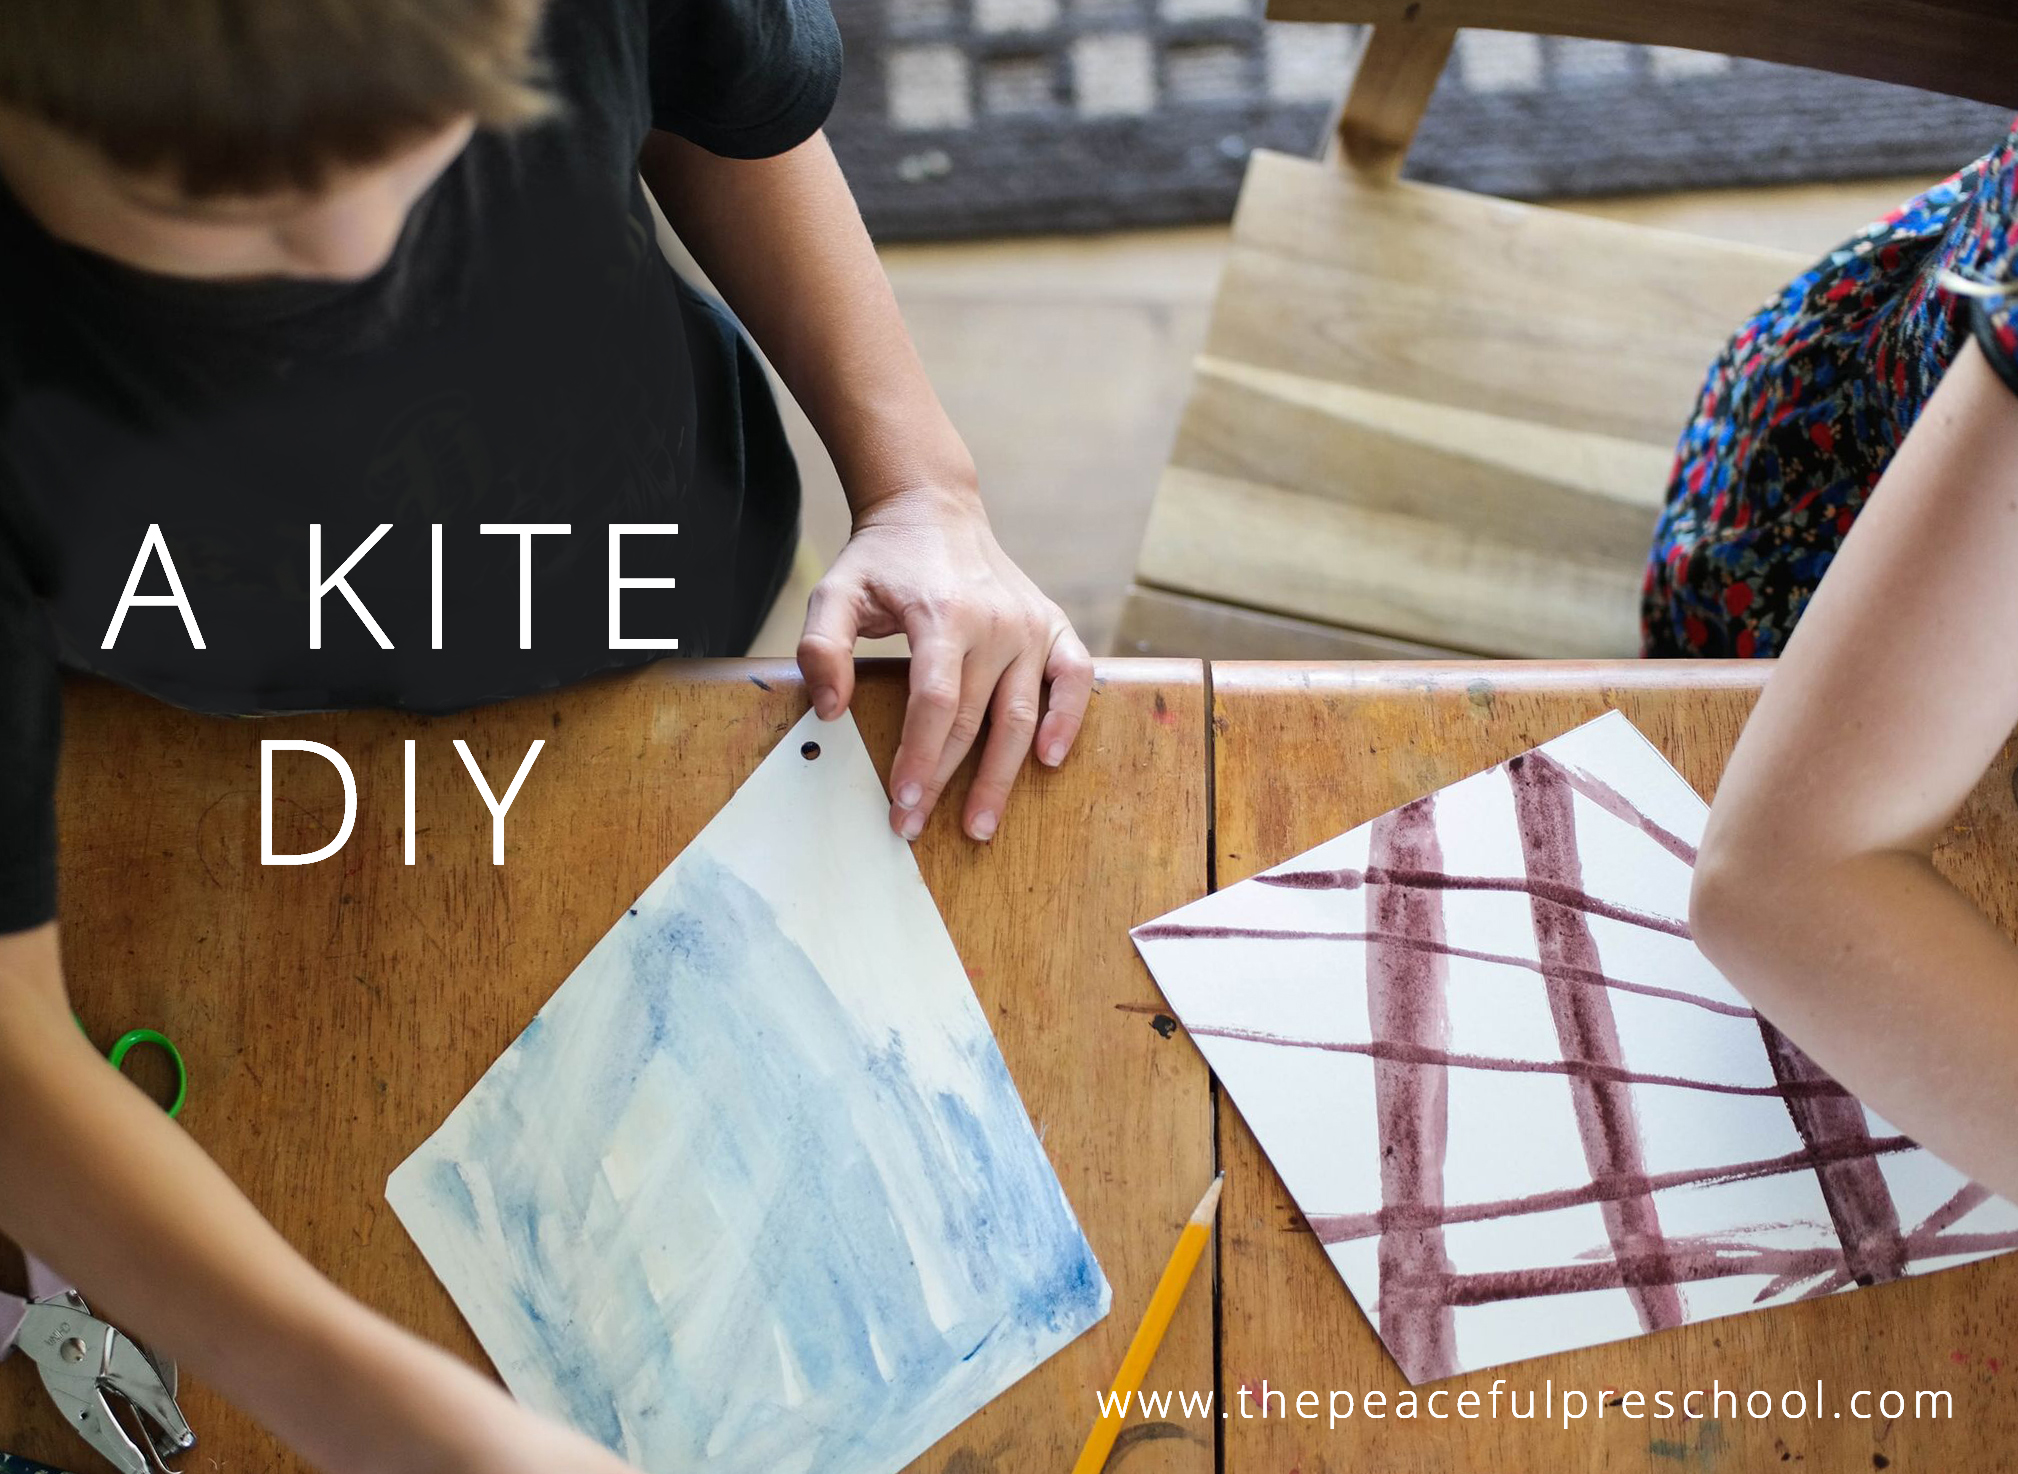 A Kite DIY // The Peaceful Preschool